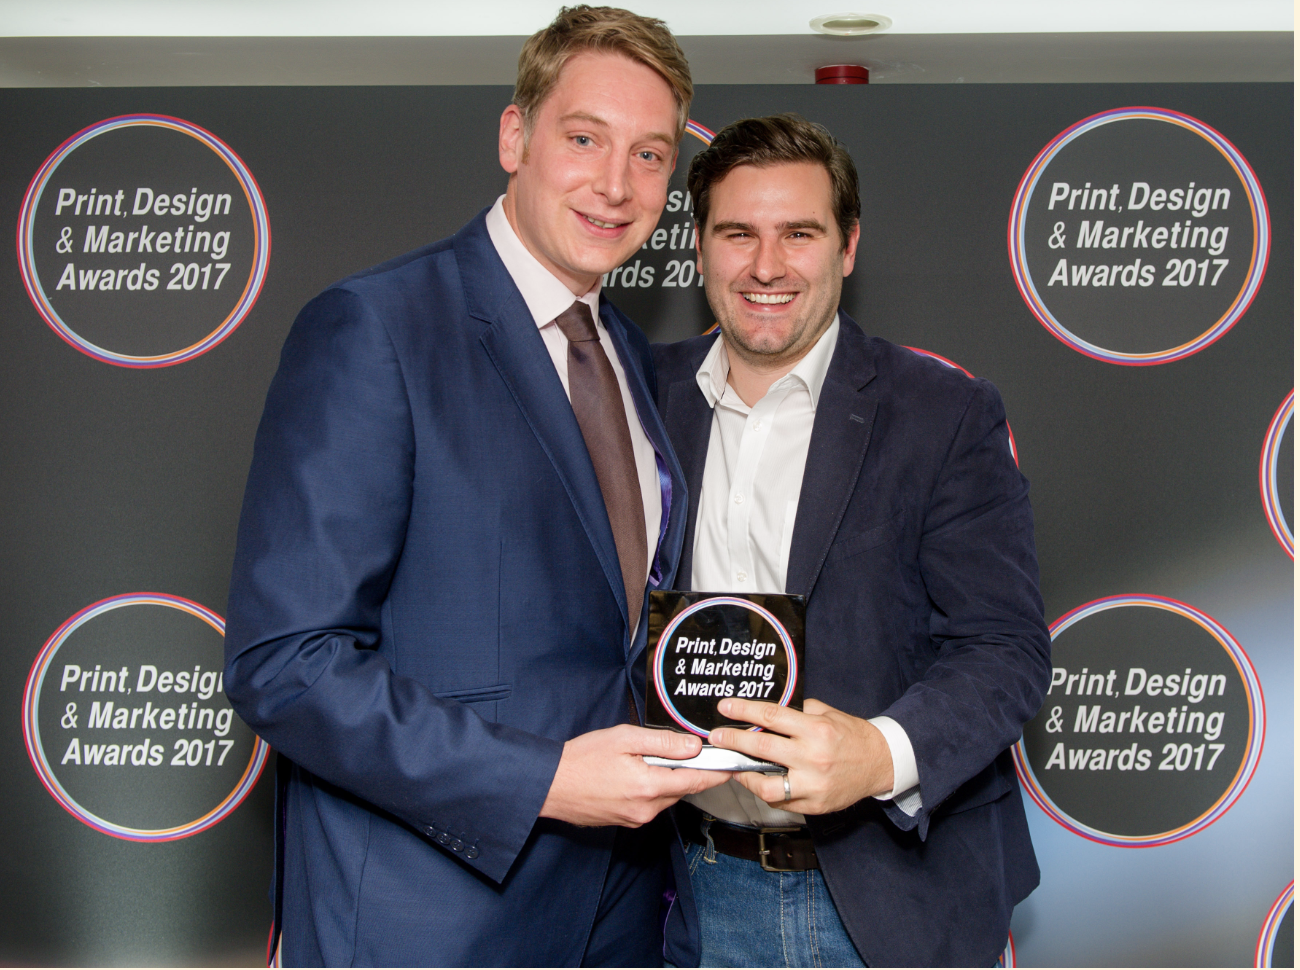 Paul Manning, MD, receives the award from Peter Jolly of HP.